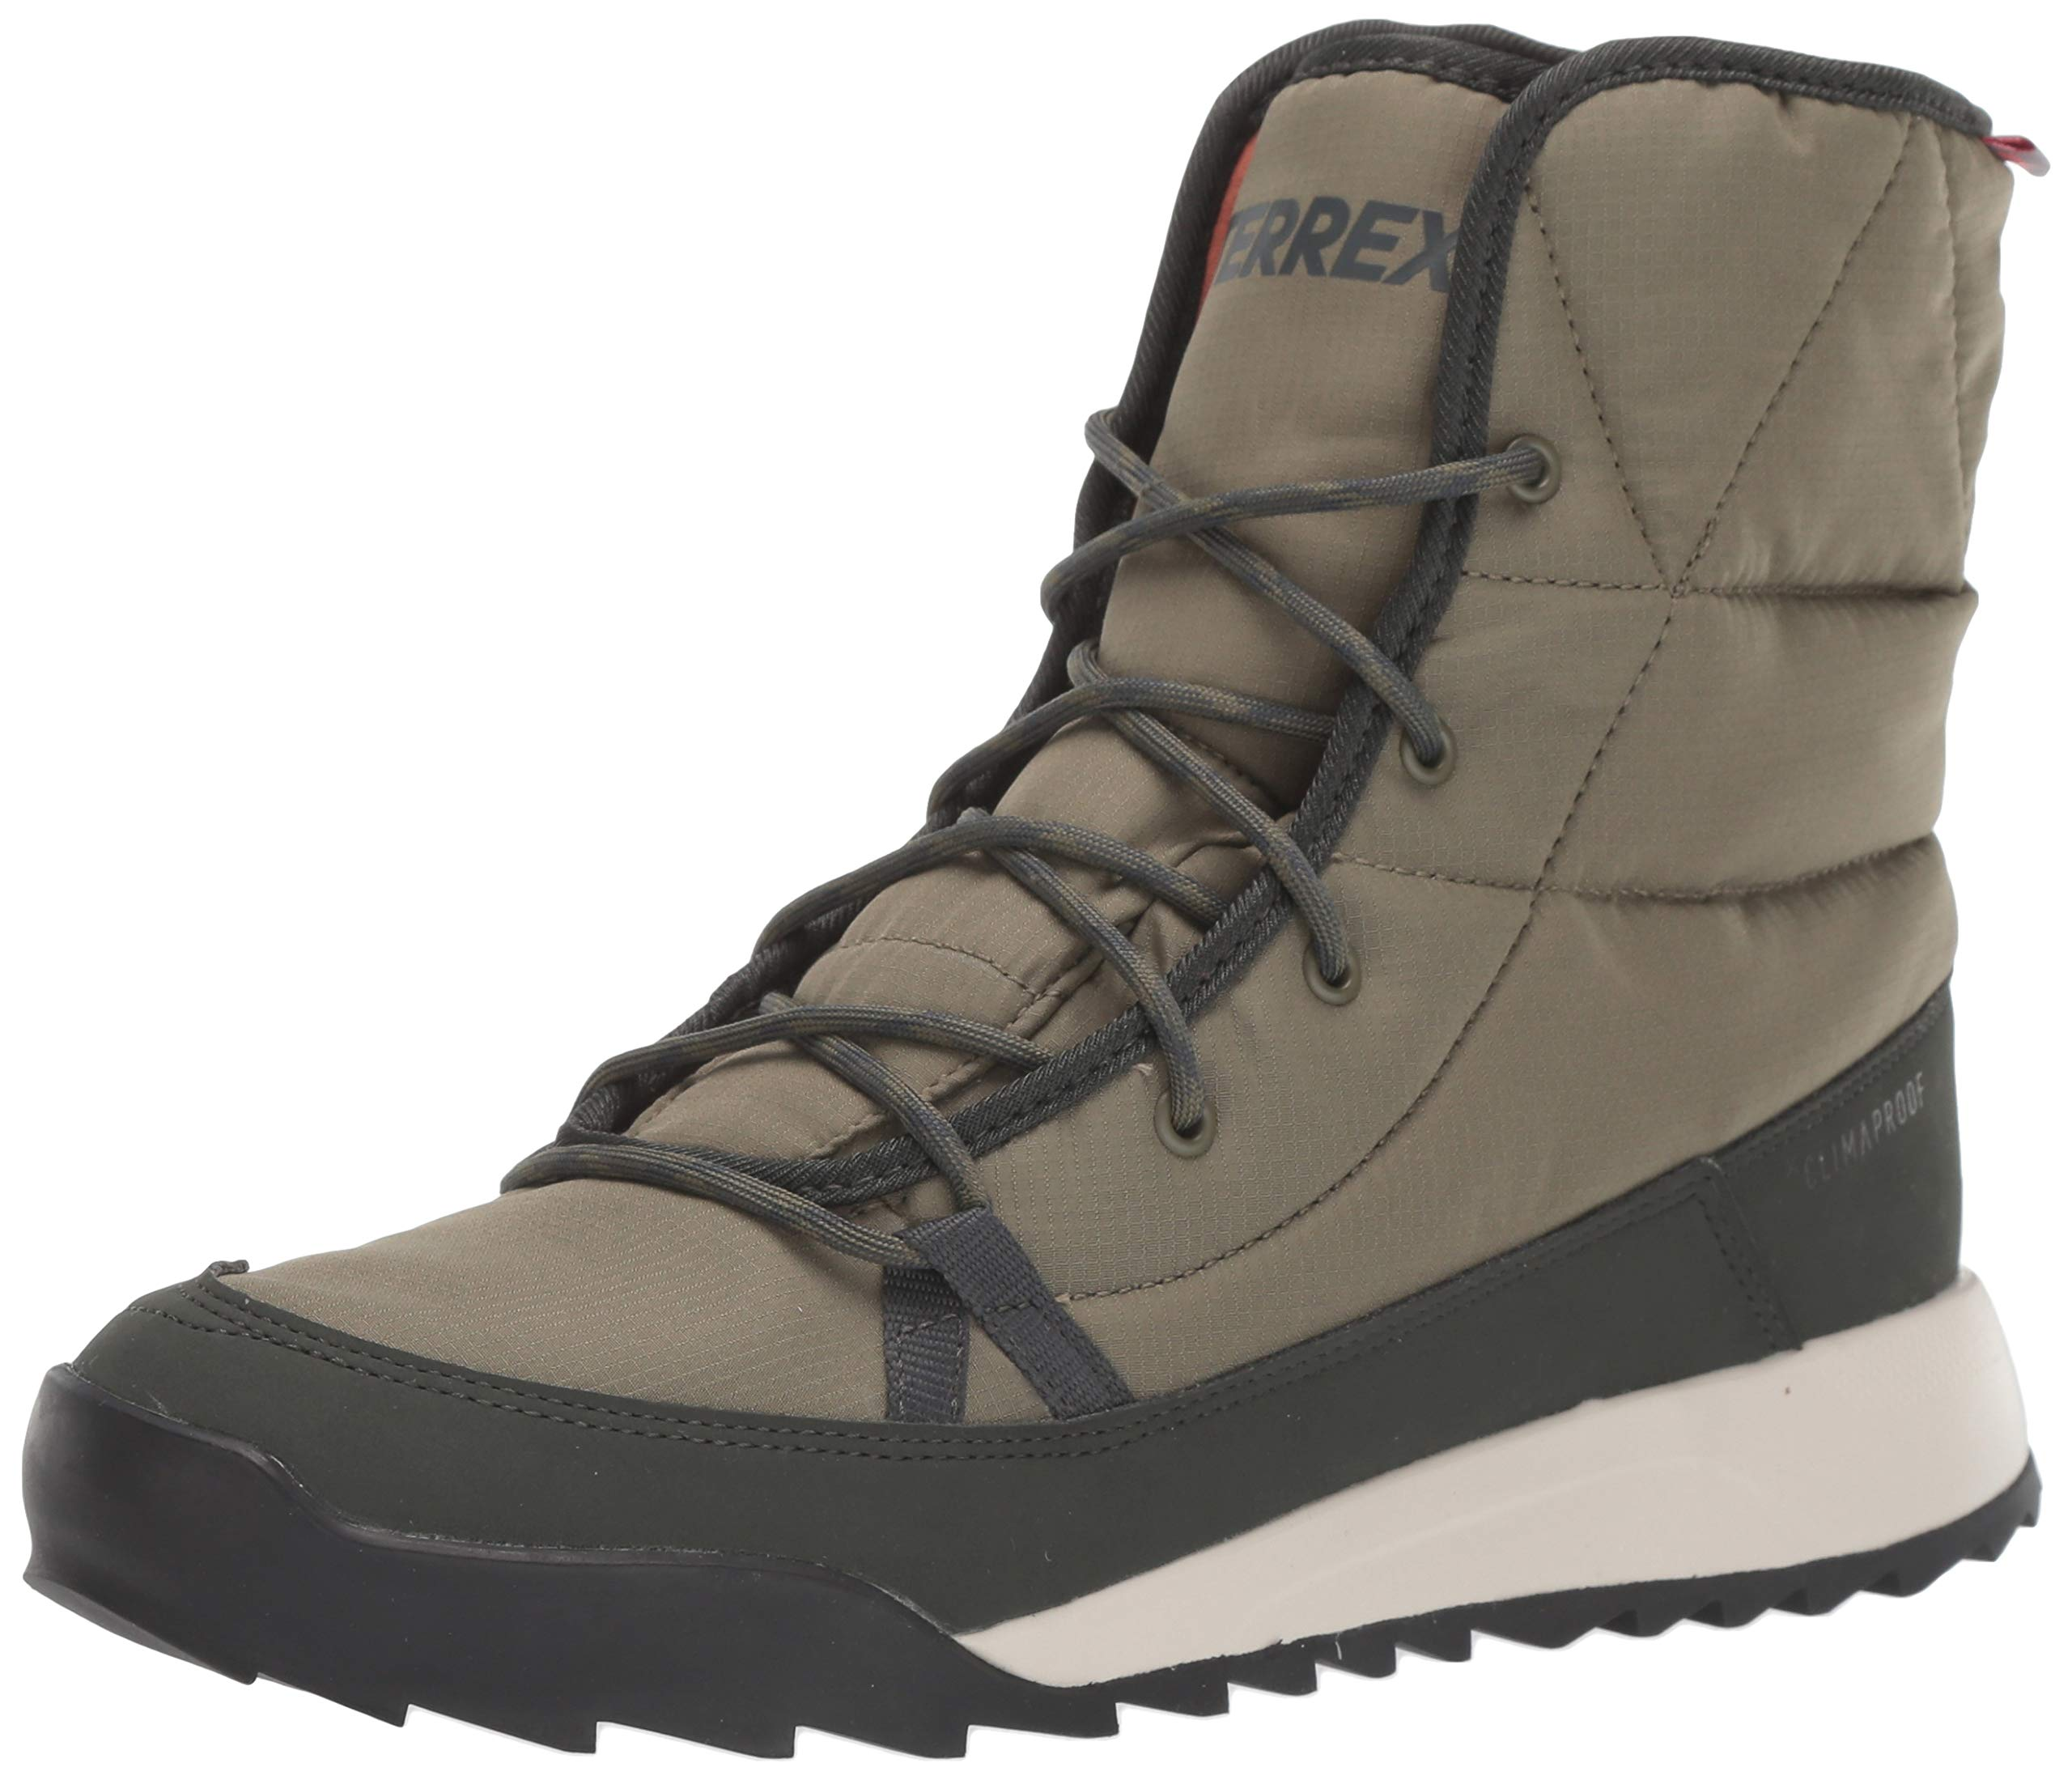 adidas outdoor Women's Terrex Choleah Padded CP Snow Boot, RAW Khaki/Legend Earth/SEMI Coral, 12 M US by adidas outdoor